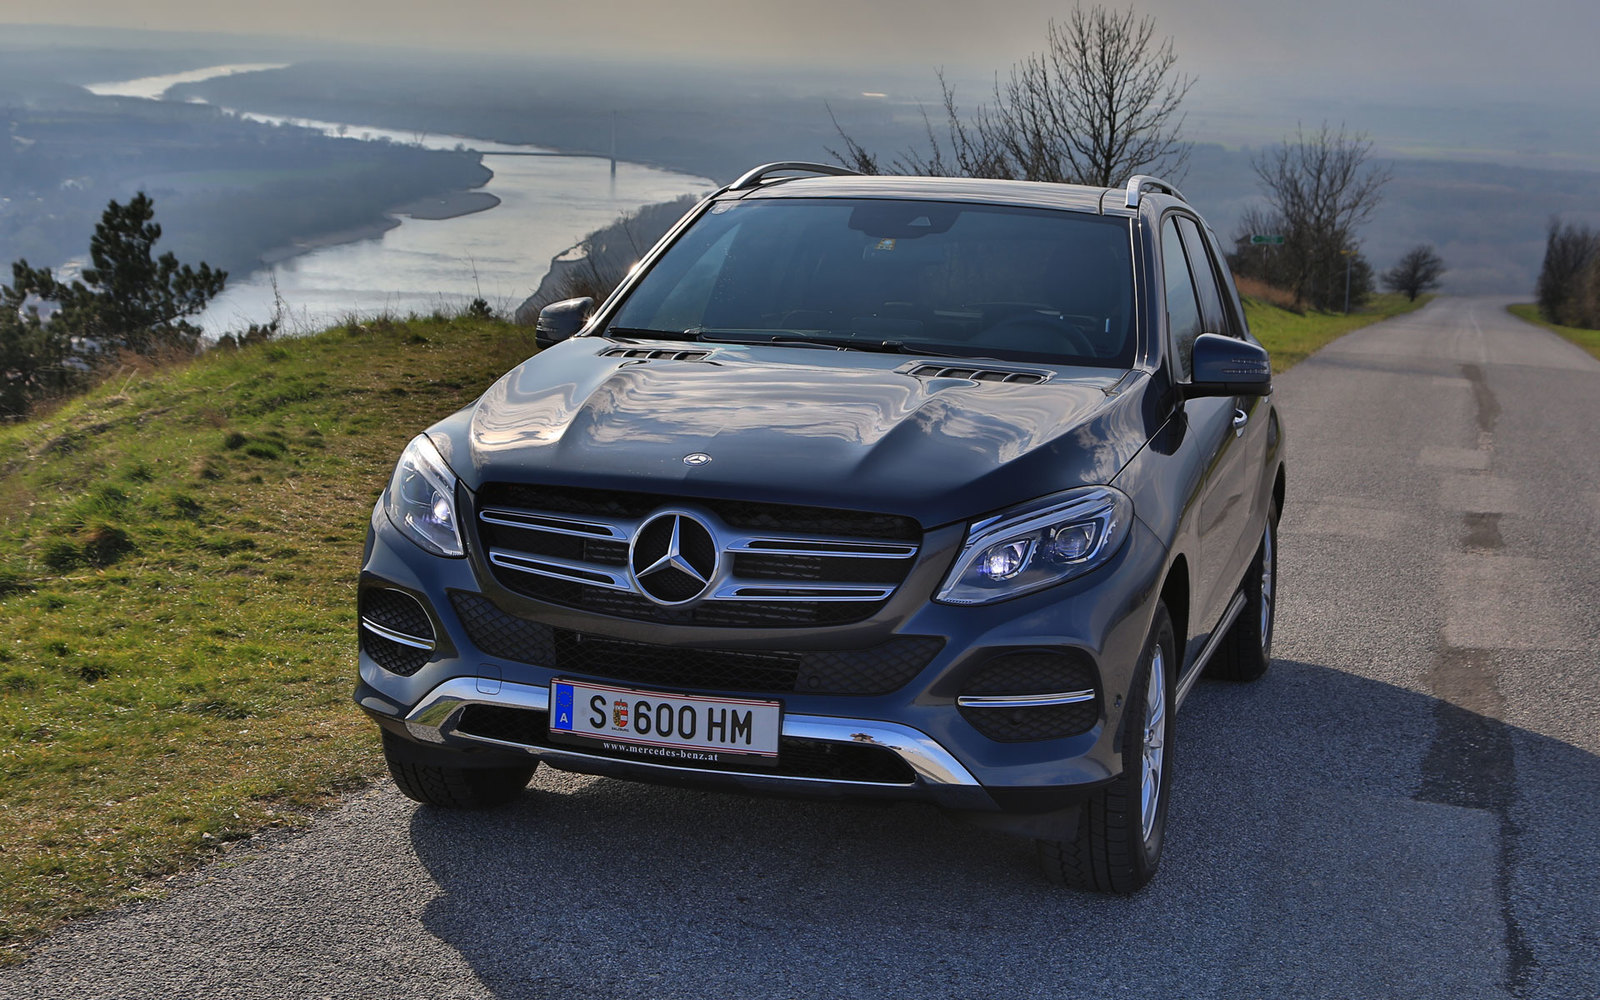 Mercedes GLE 350 d 4Matic